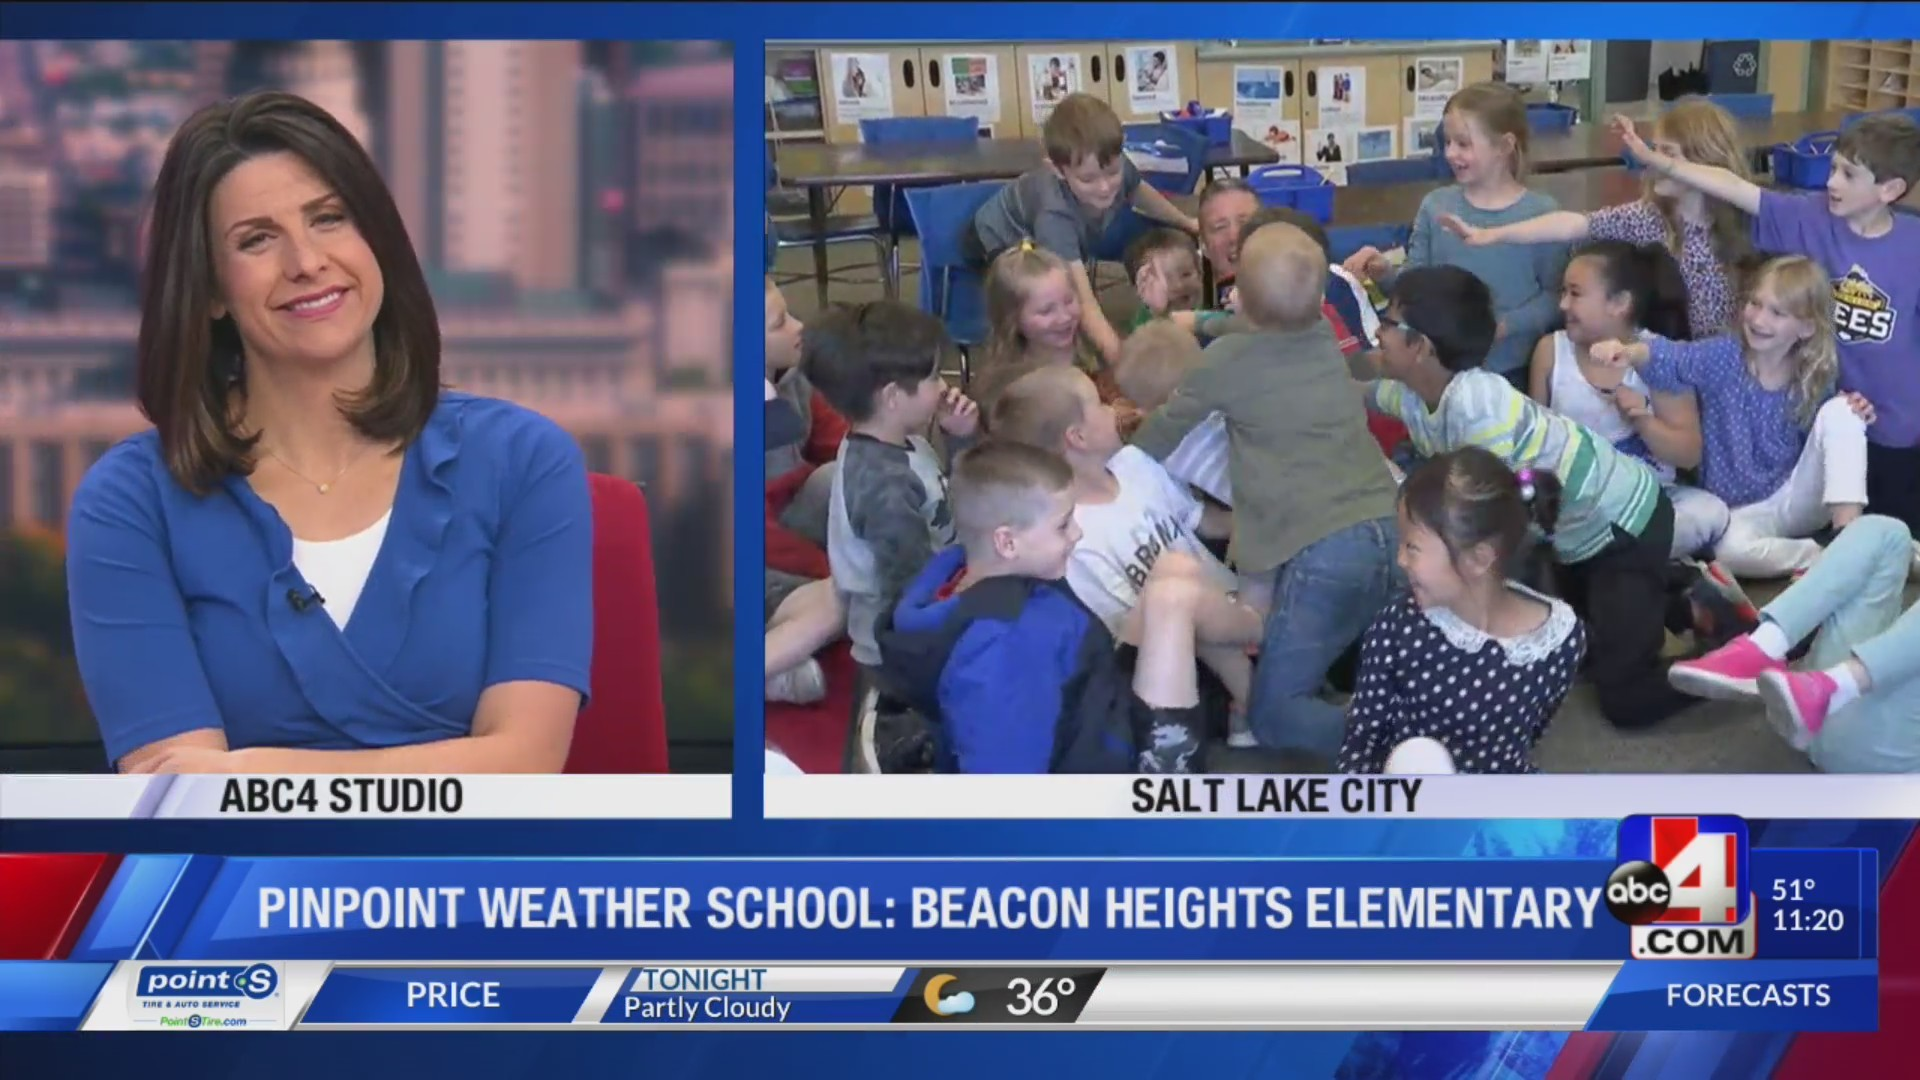 Beacon Heights Elementary Weather School